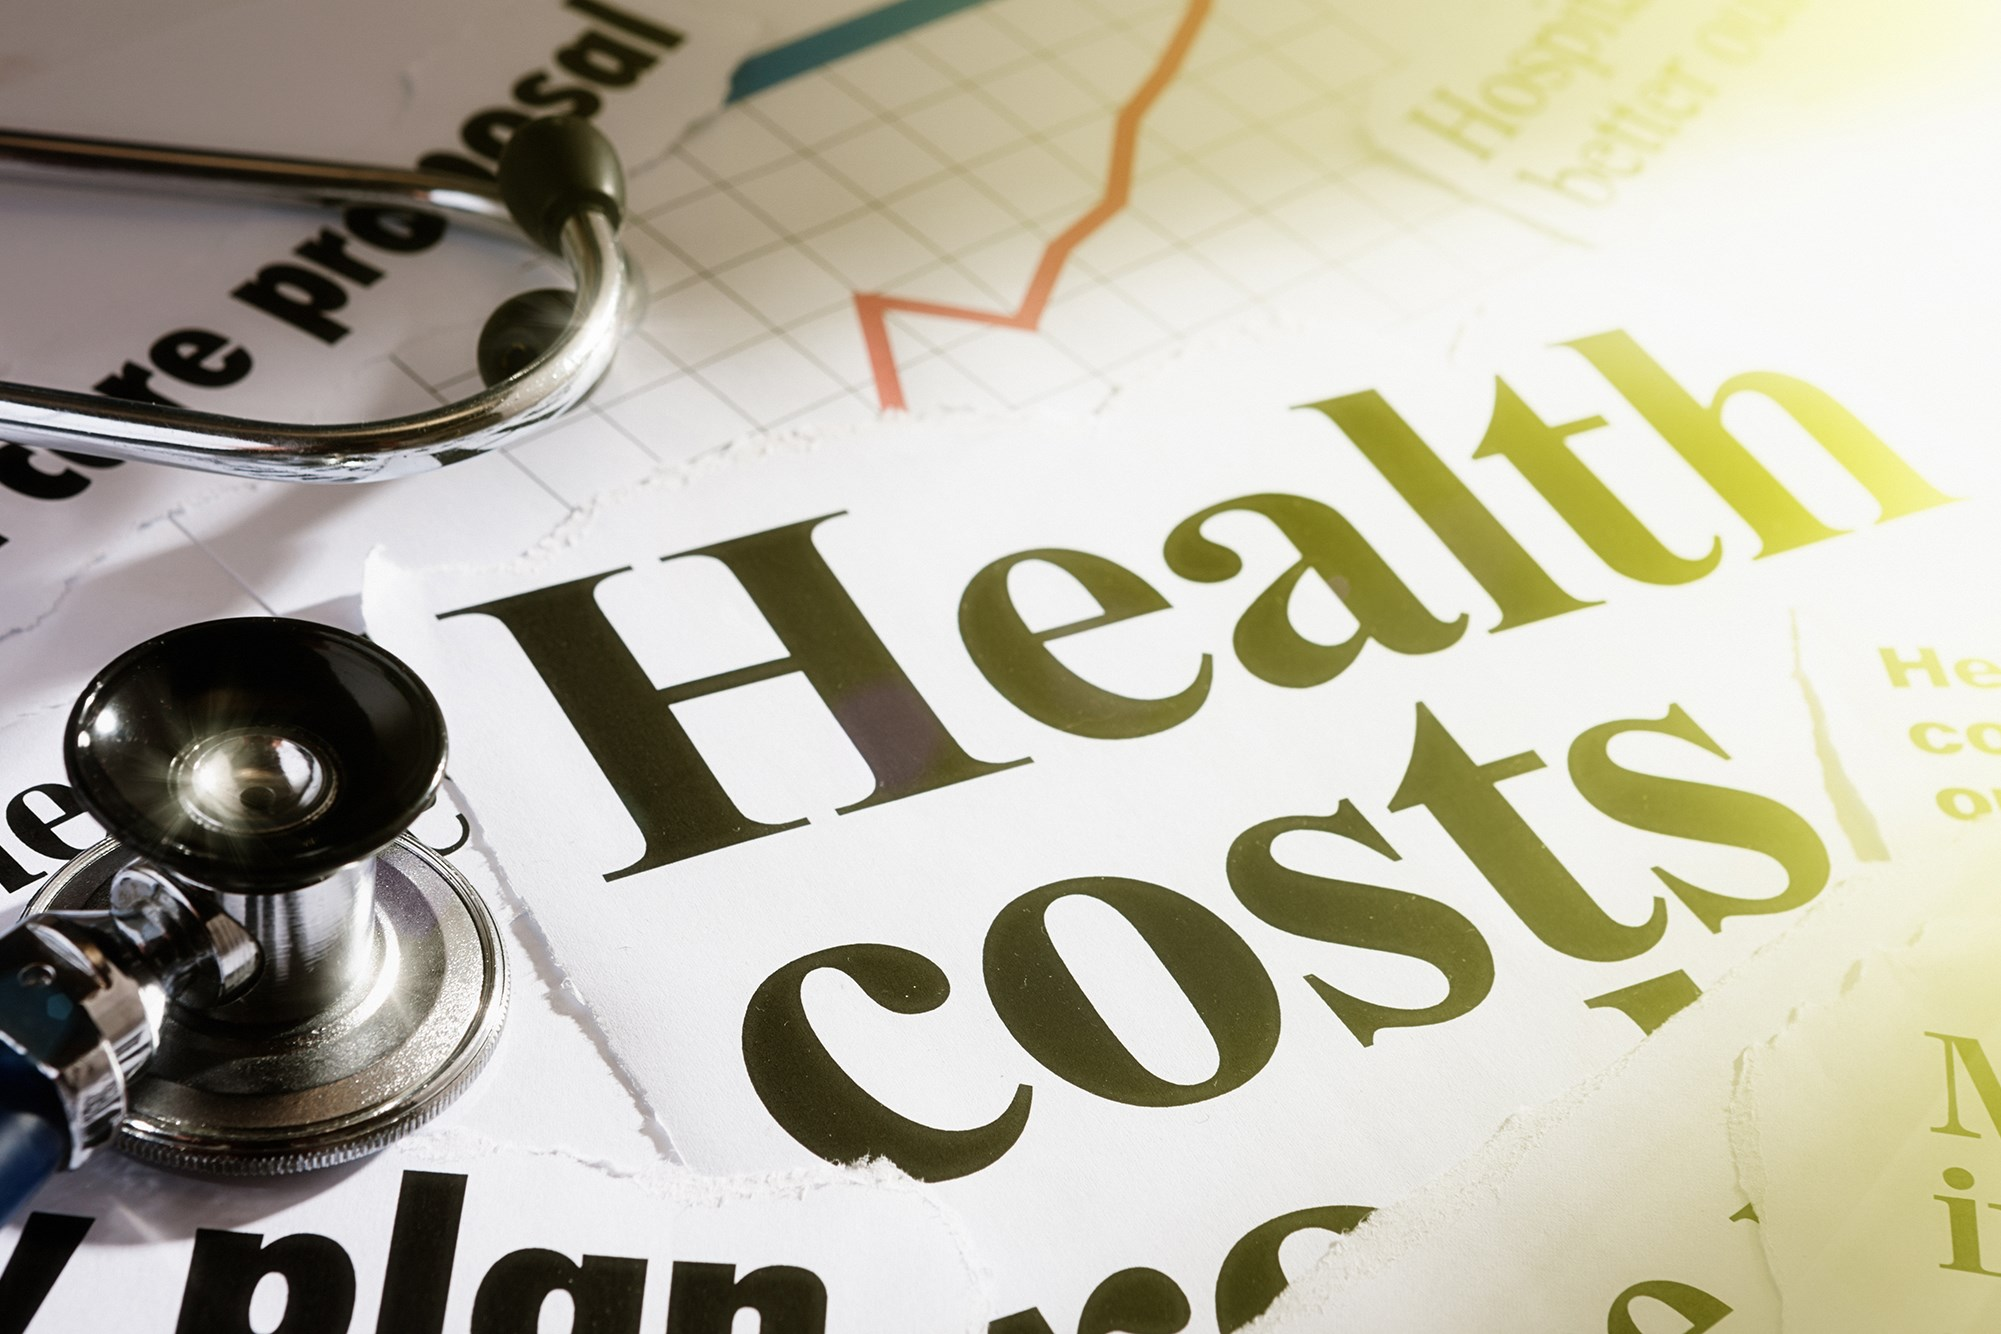 Younger Patients, Higher Costs: The Changing Demographics of Cancer